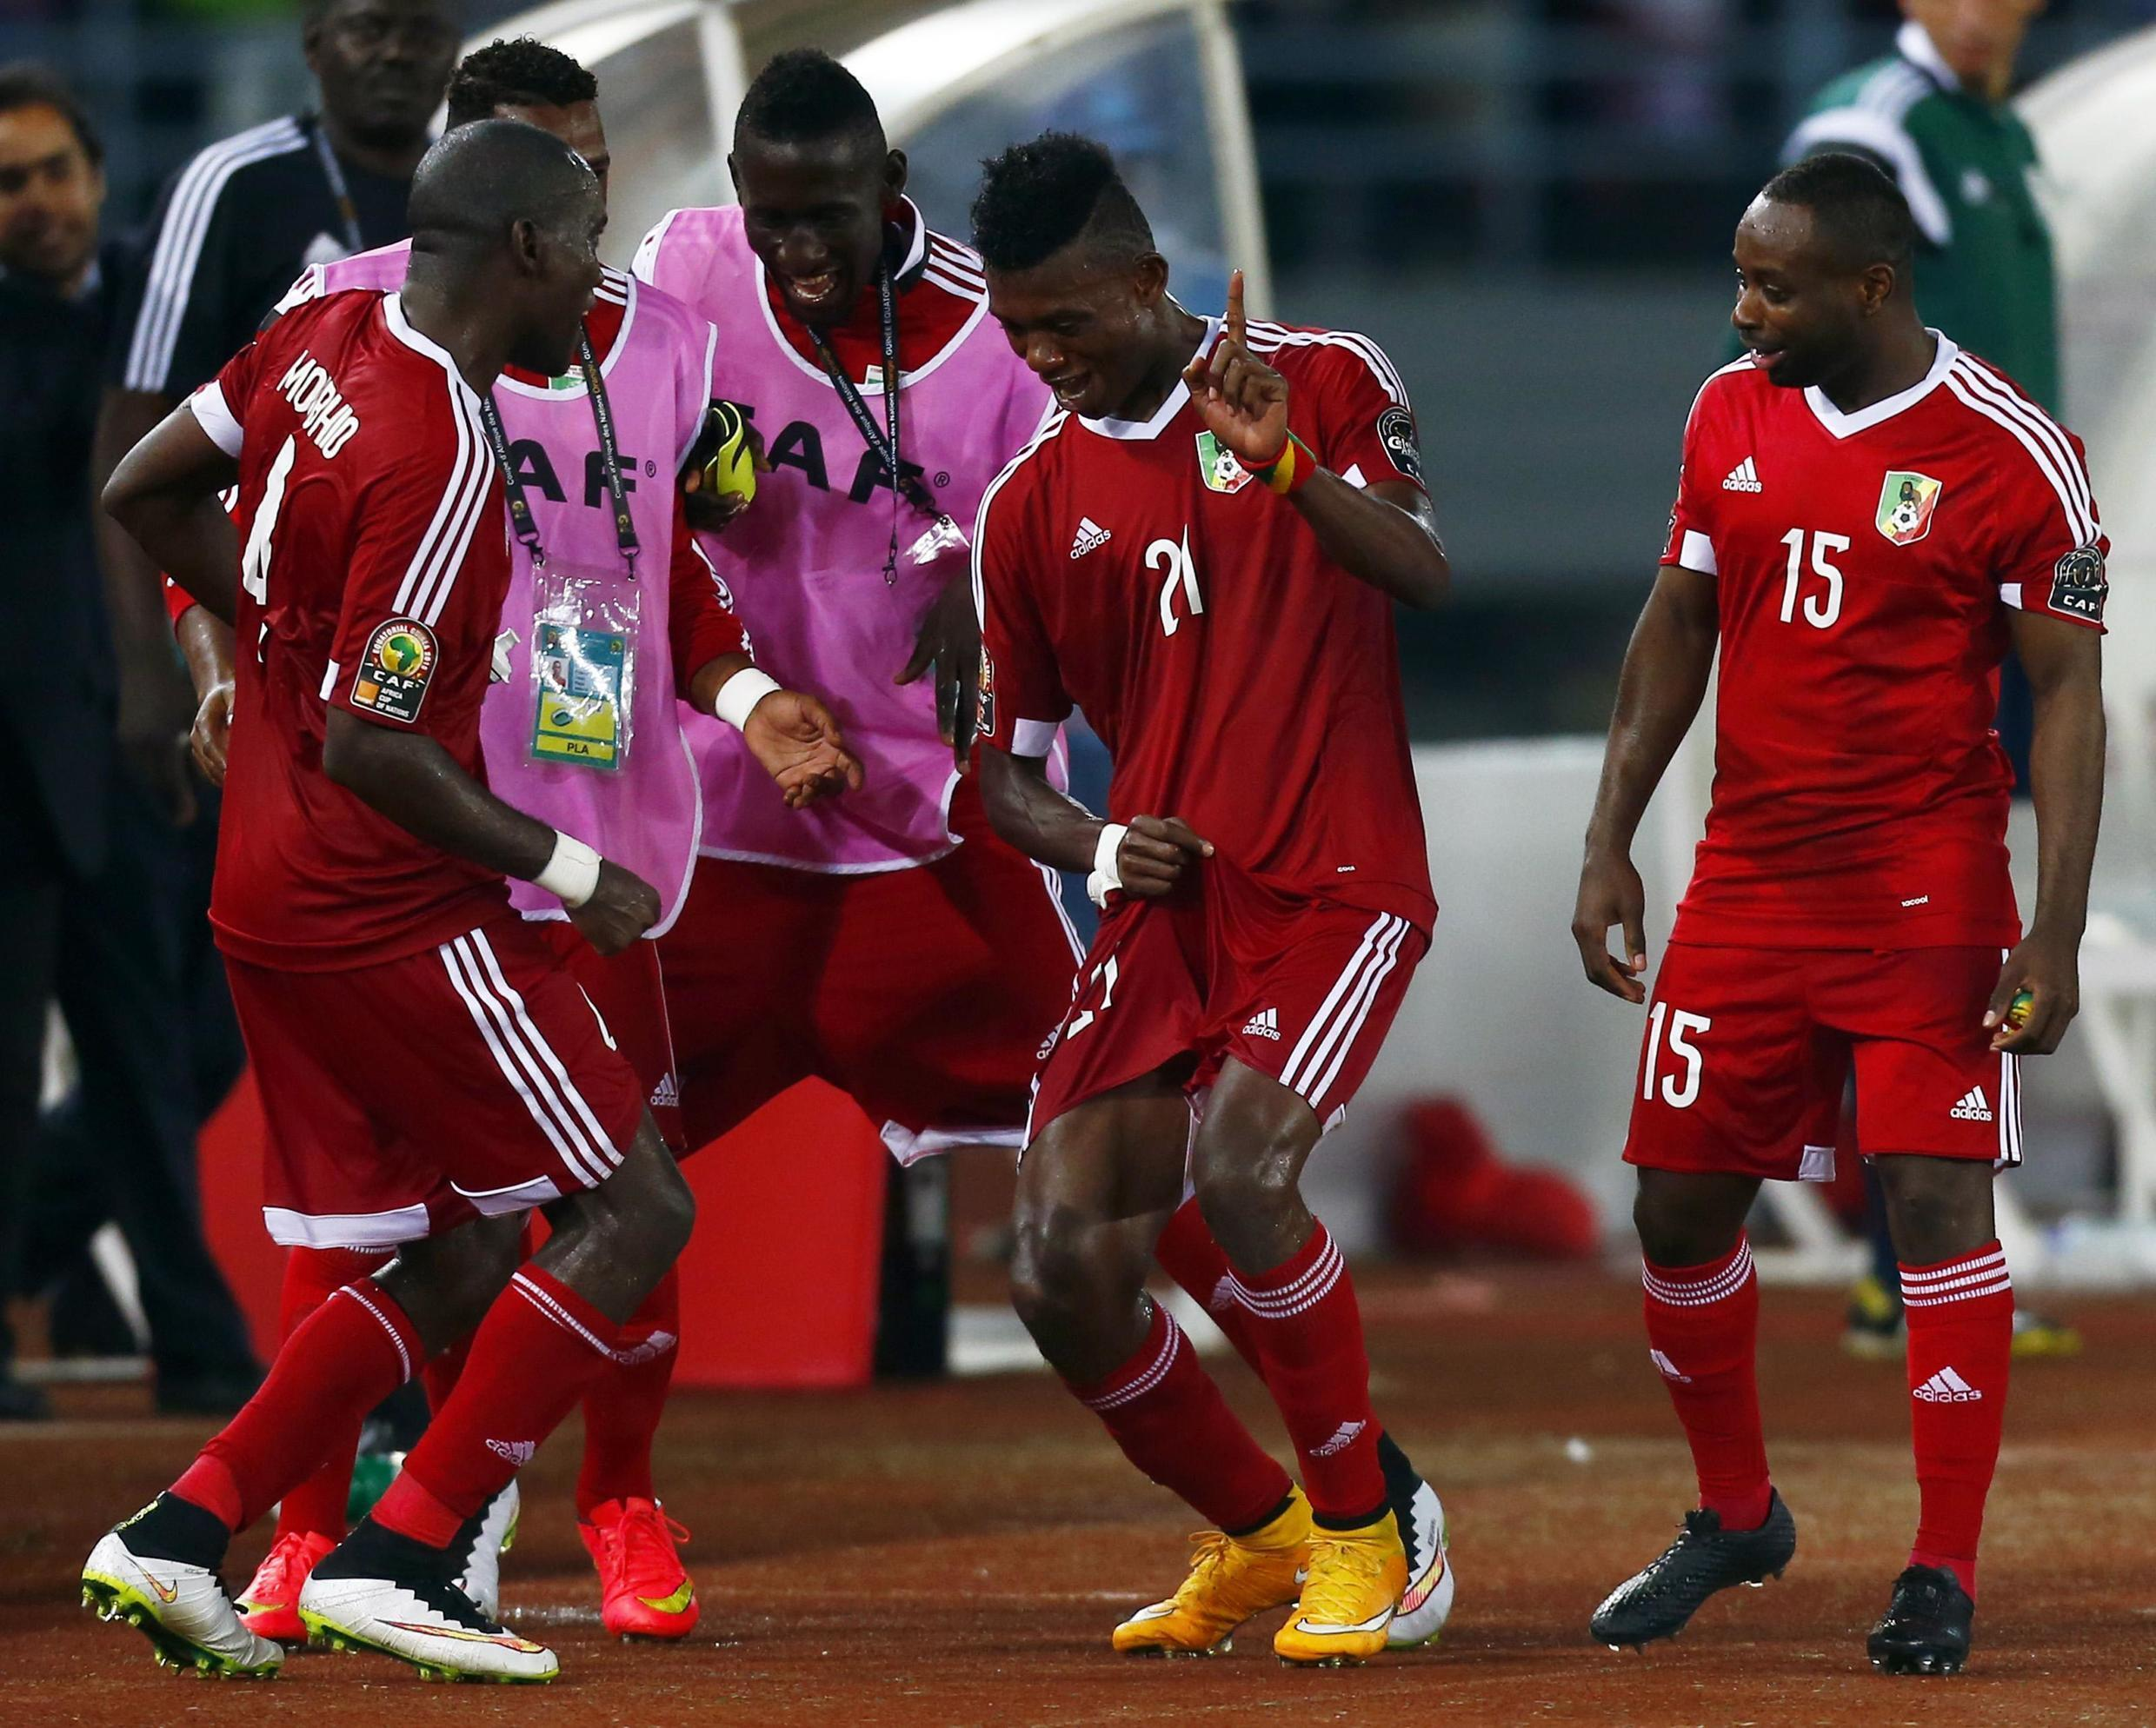 Congo's players celebrate and dance after they won their Group A soccer match against Gabon in the African Cup of Nations in Bata, Equatorial Guinea, 21 January 2015